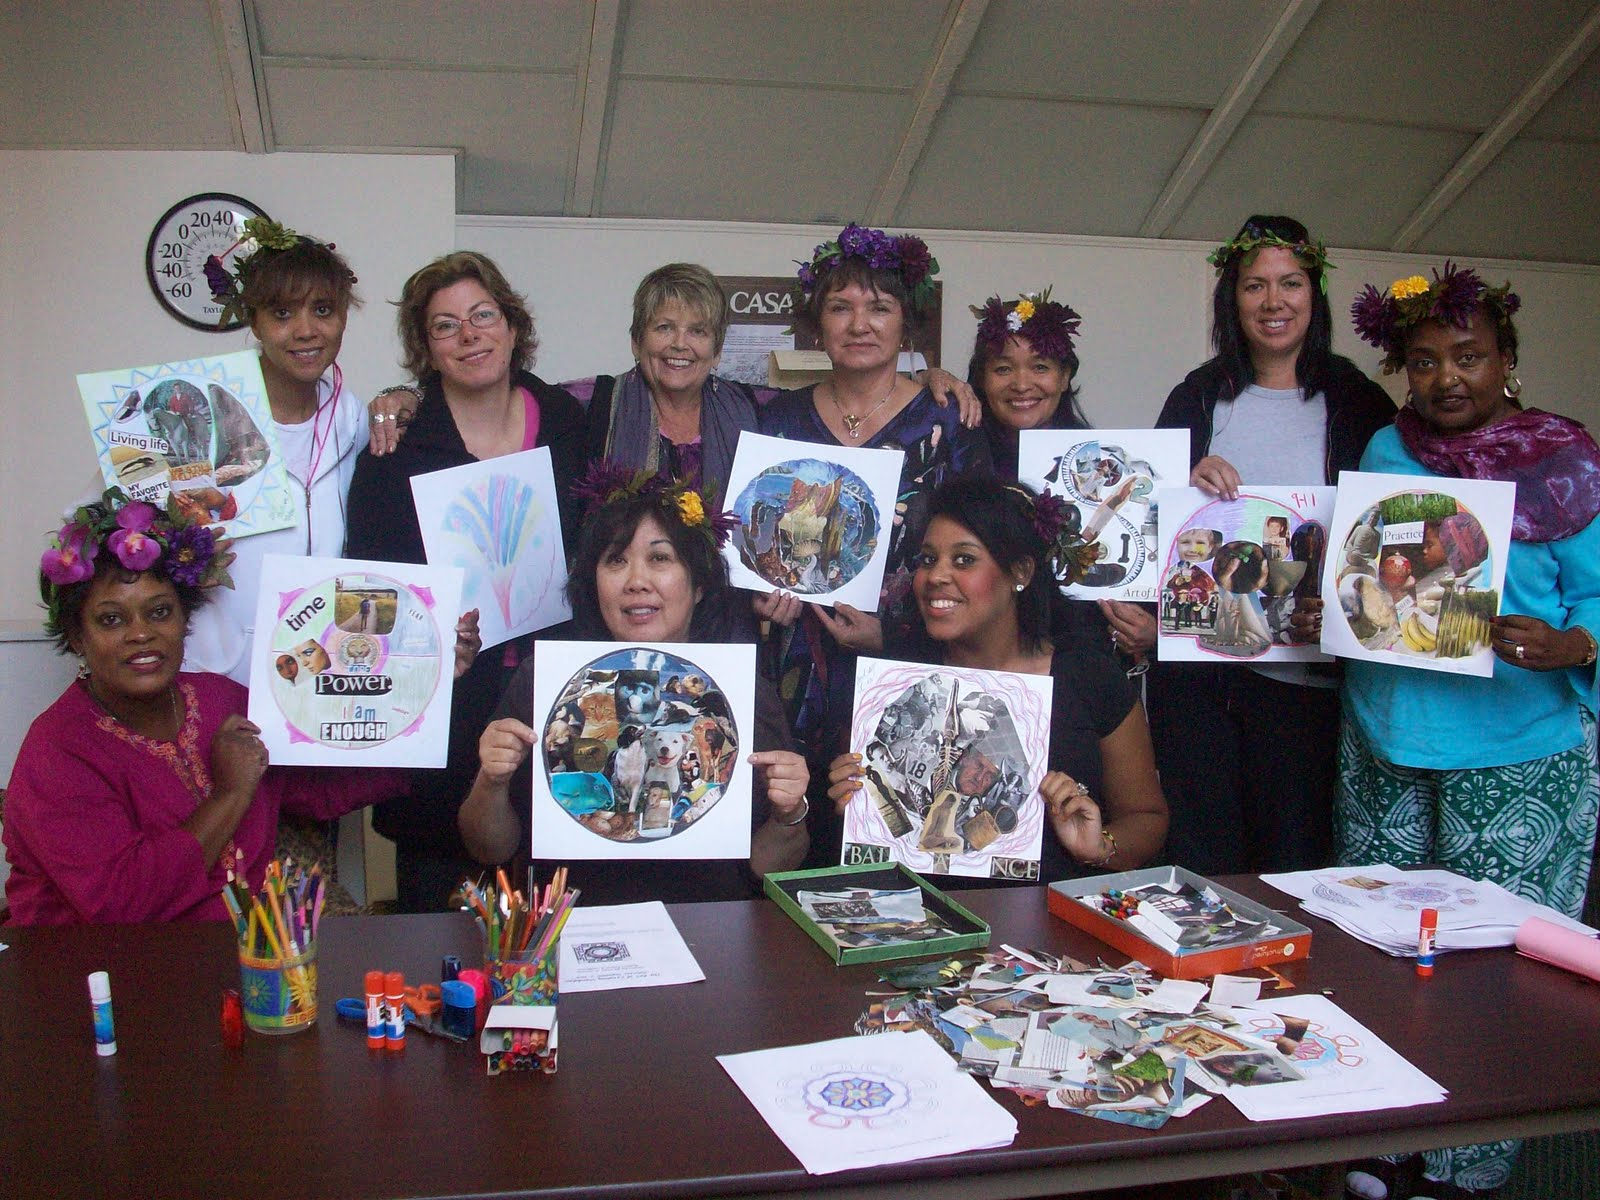 Art workshops 4 women los angeles 2010 09 12 for Craft workshops los angeles